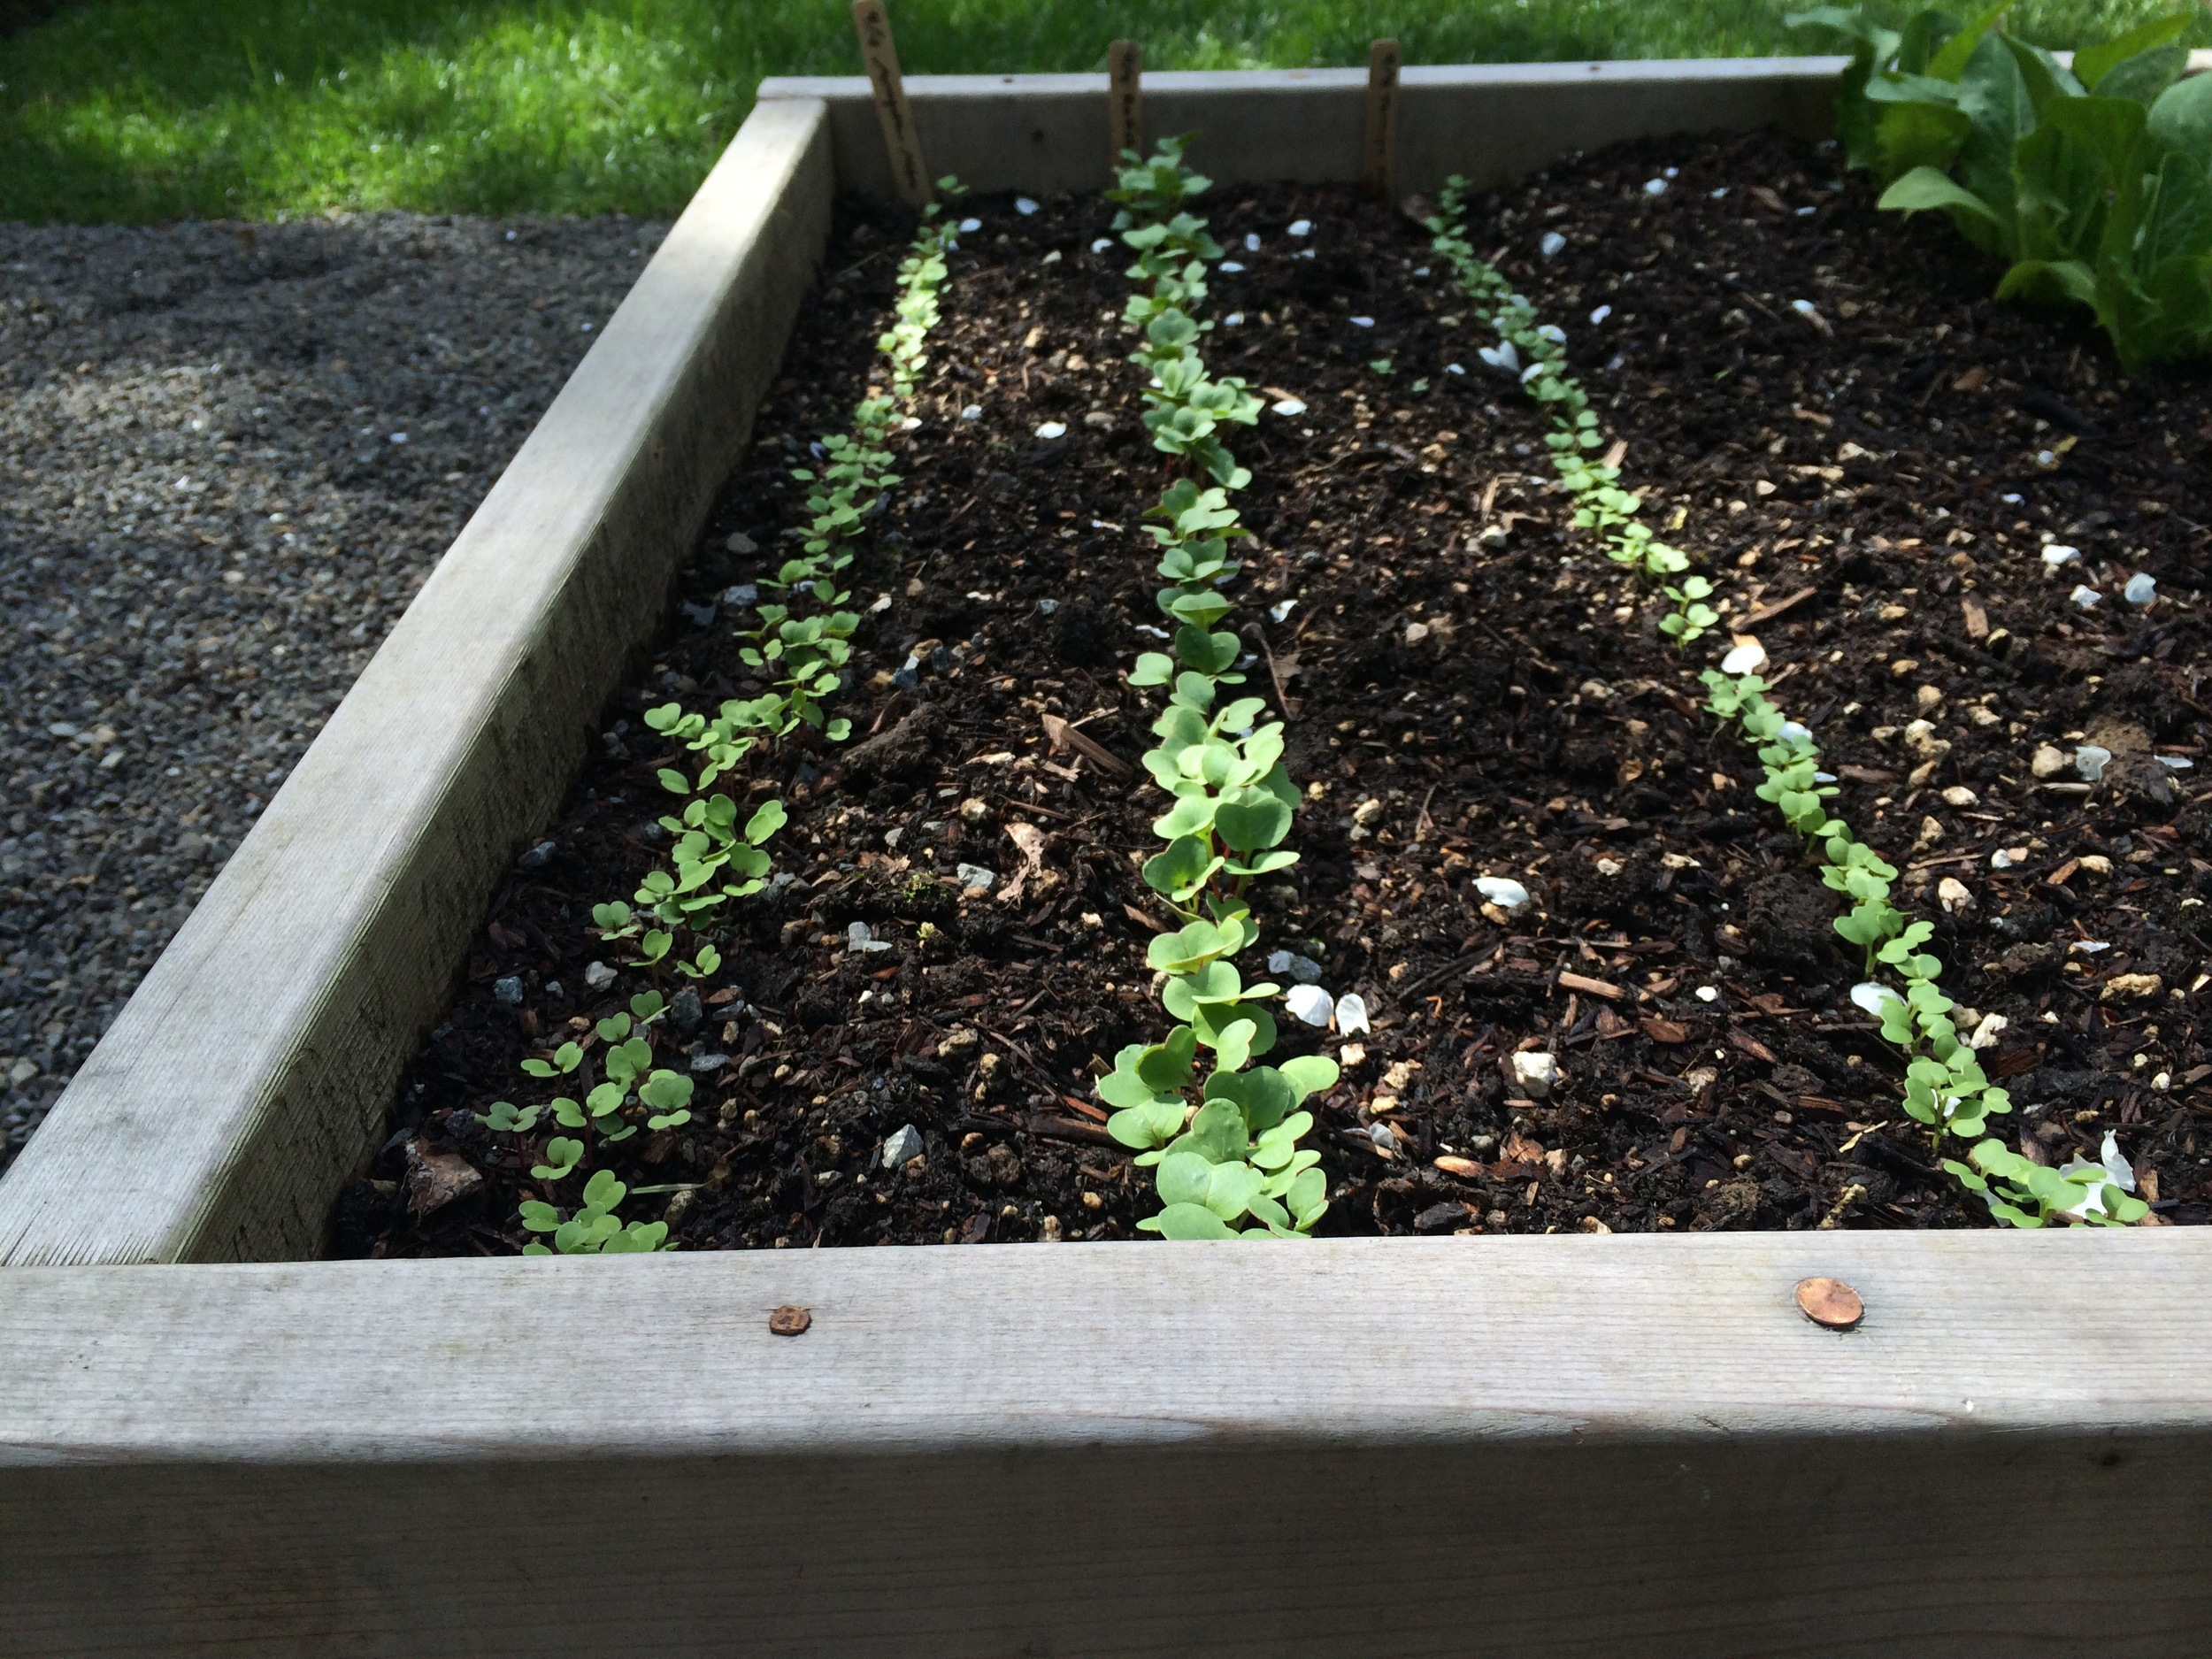 Germinated arugula, radishes, and turnips in one of our raised beds